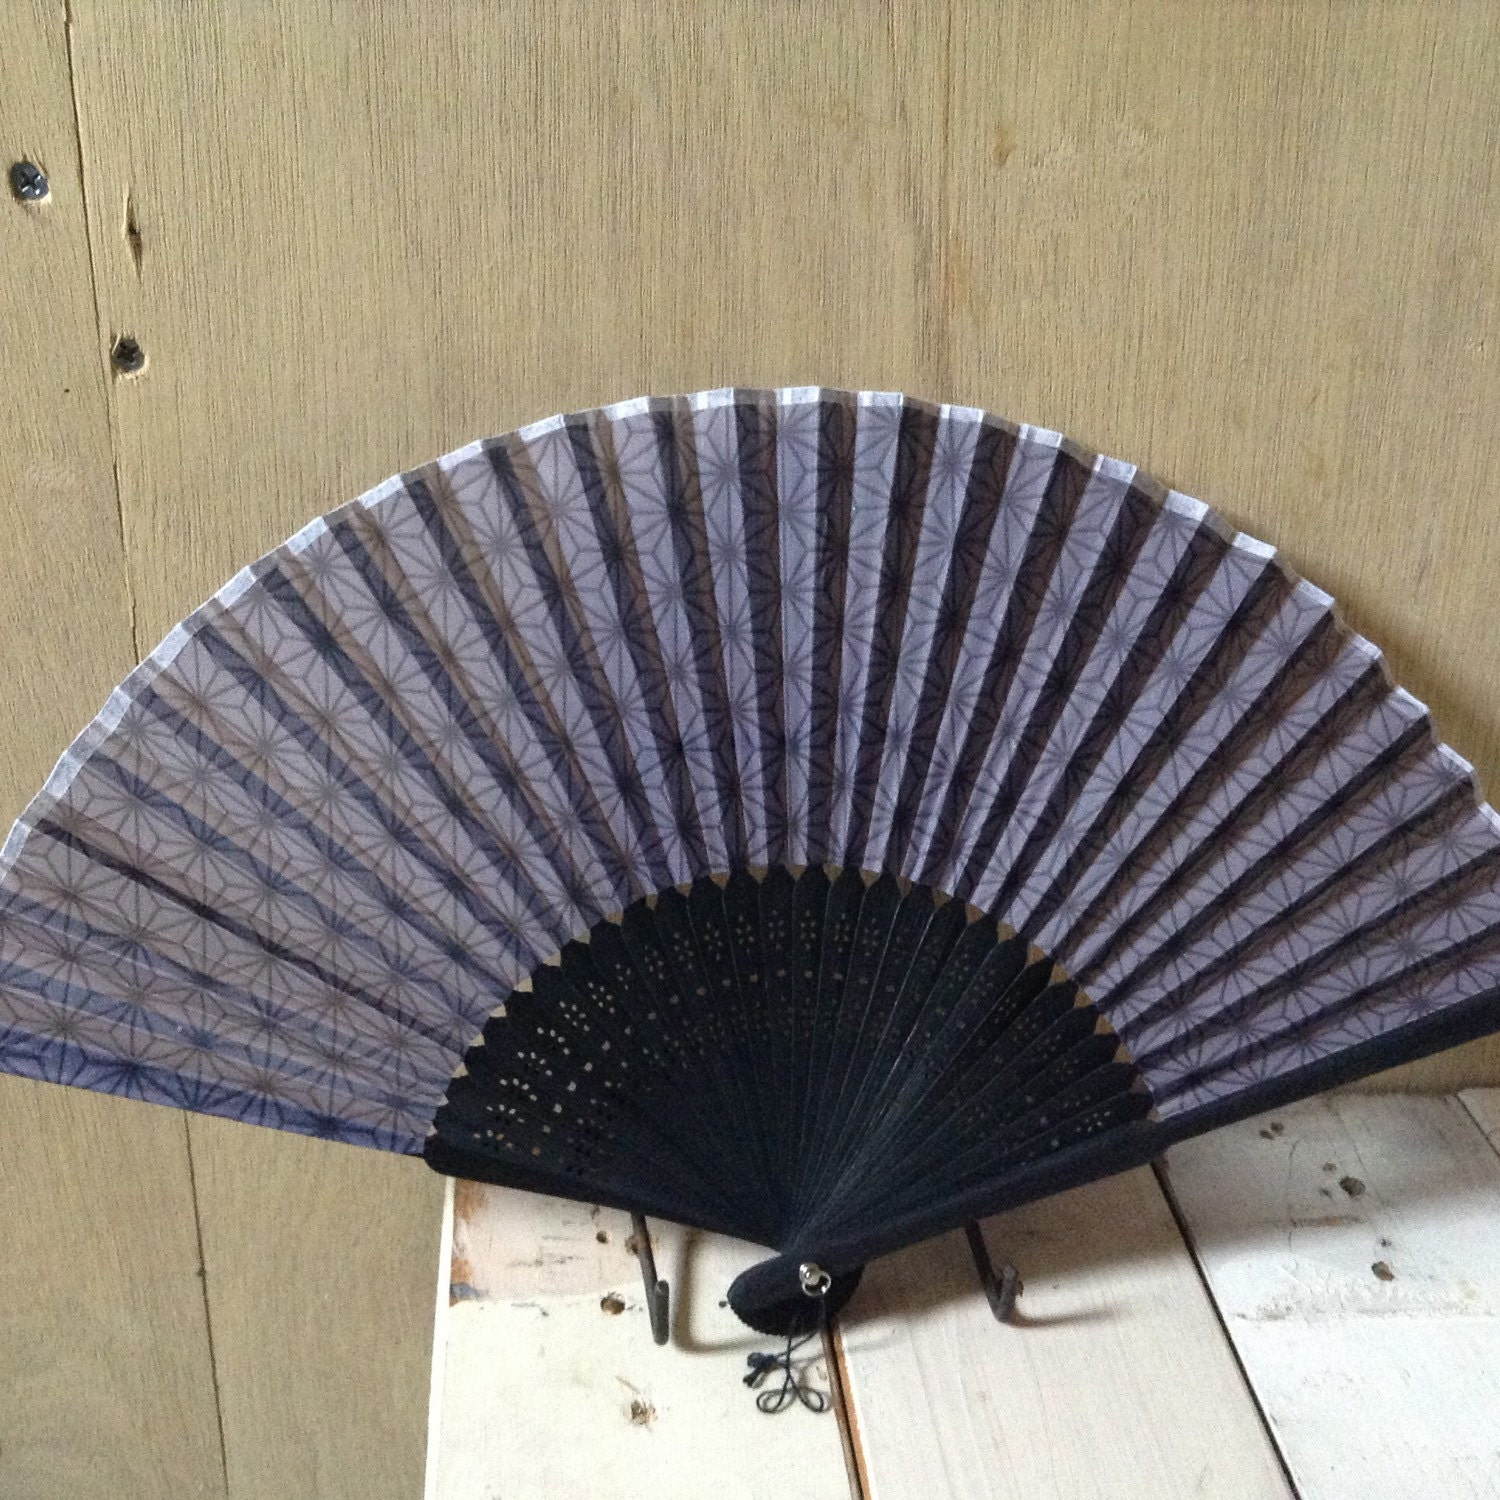 hand held paper fans Browse our extensive selection of hand fans in an assortment of materials, including paper, silk, sandalwood, feathers and more.